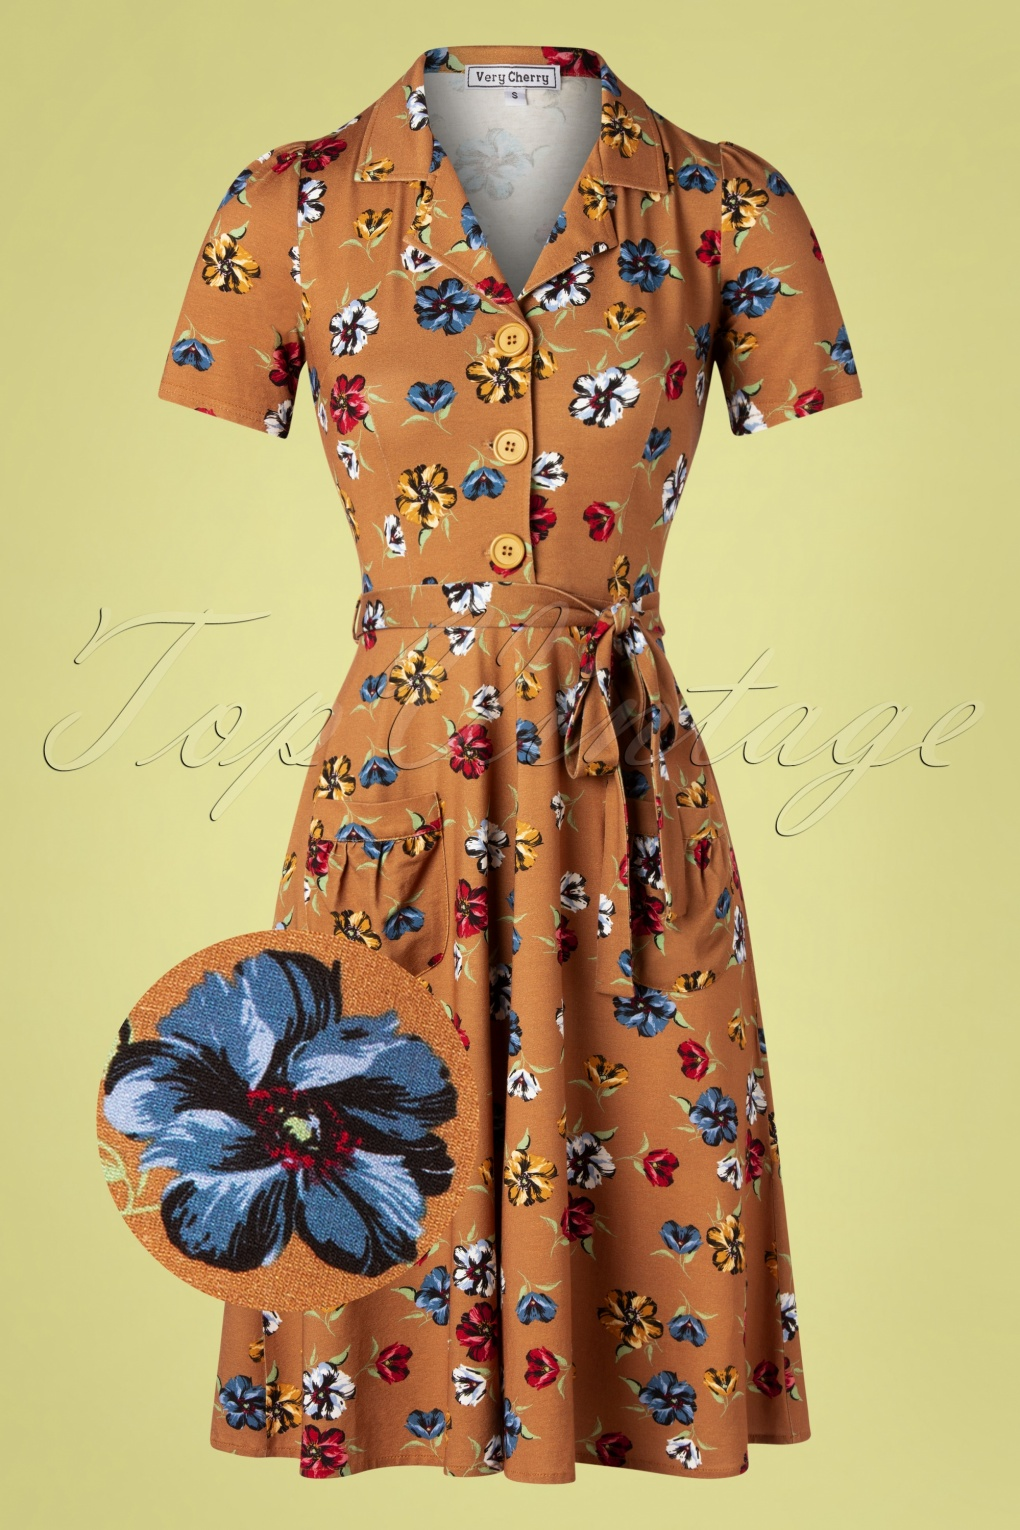 500 Vintage Style Dresses for Sale | Vintage Inspired Dresses 40s Corniglia Flowers Tricot Revers Dress in Camel £114.02 AT vintagedancer.com